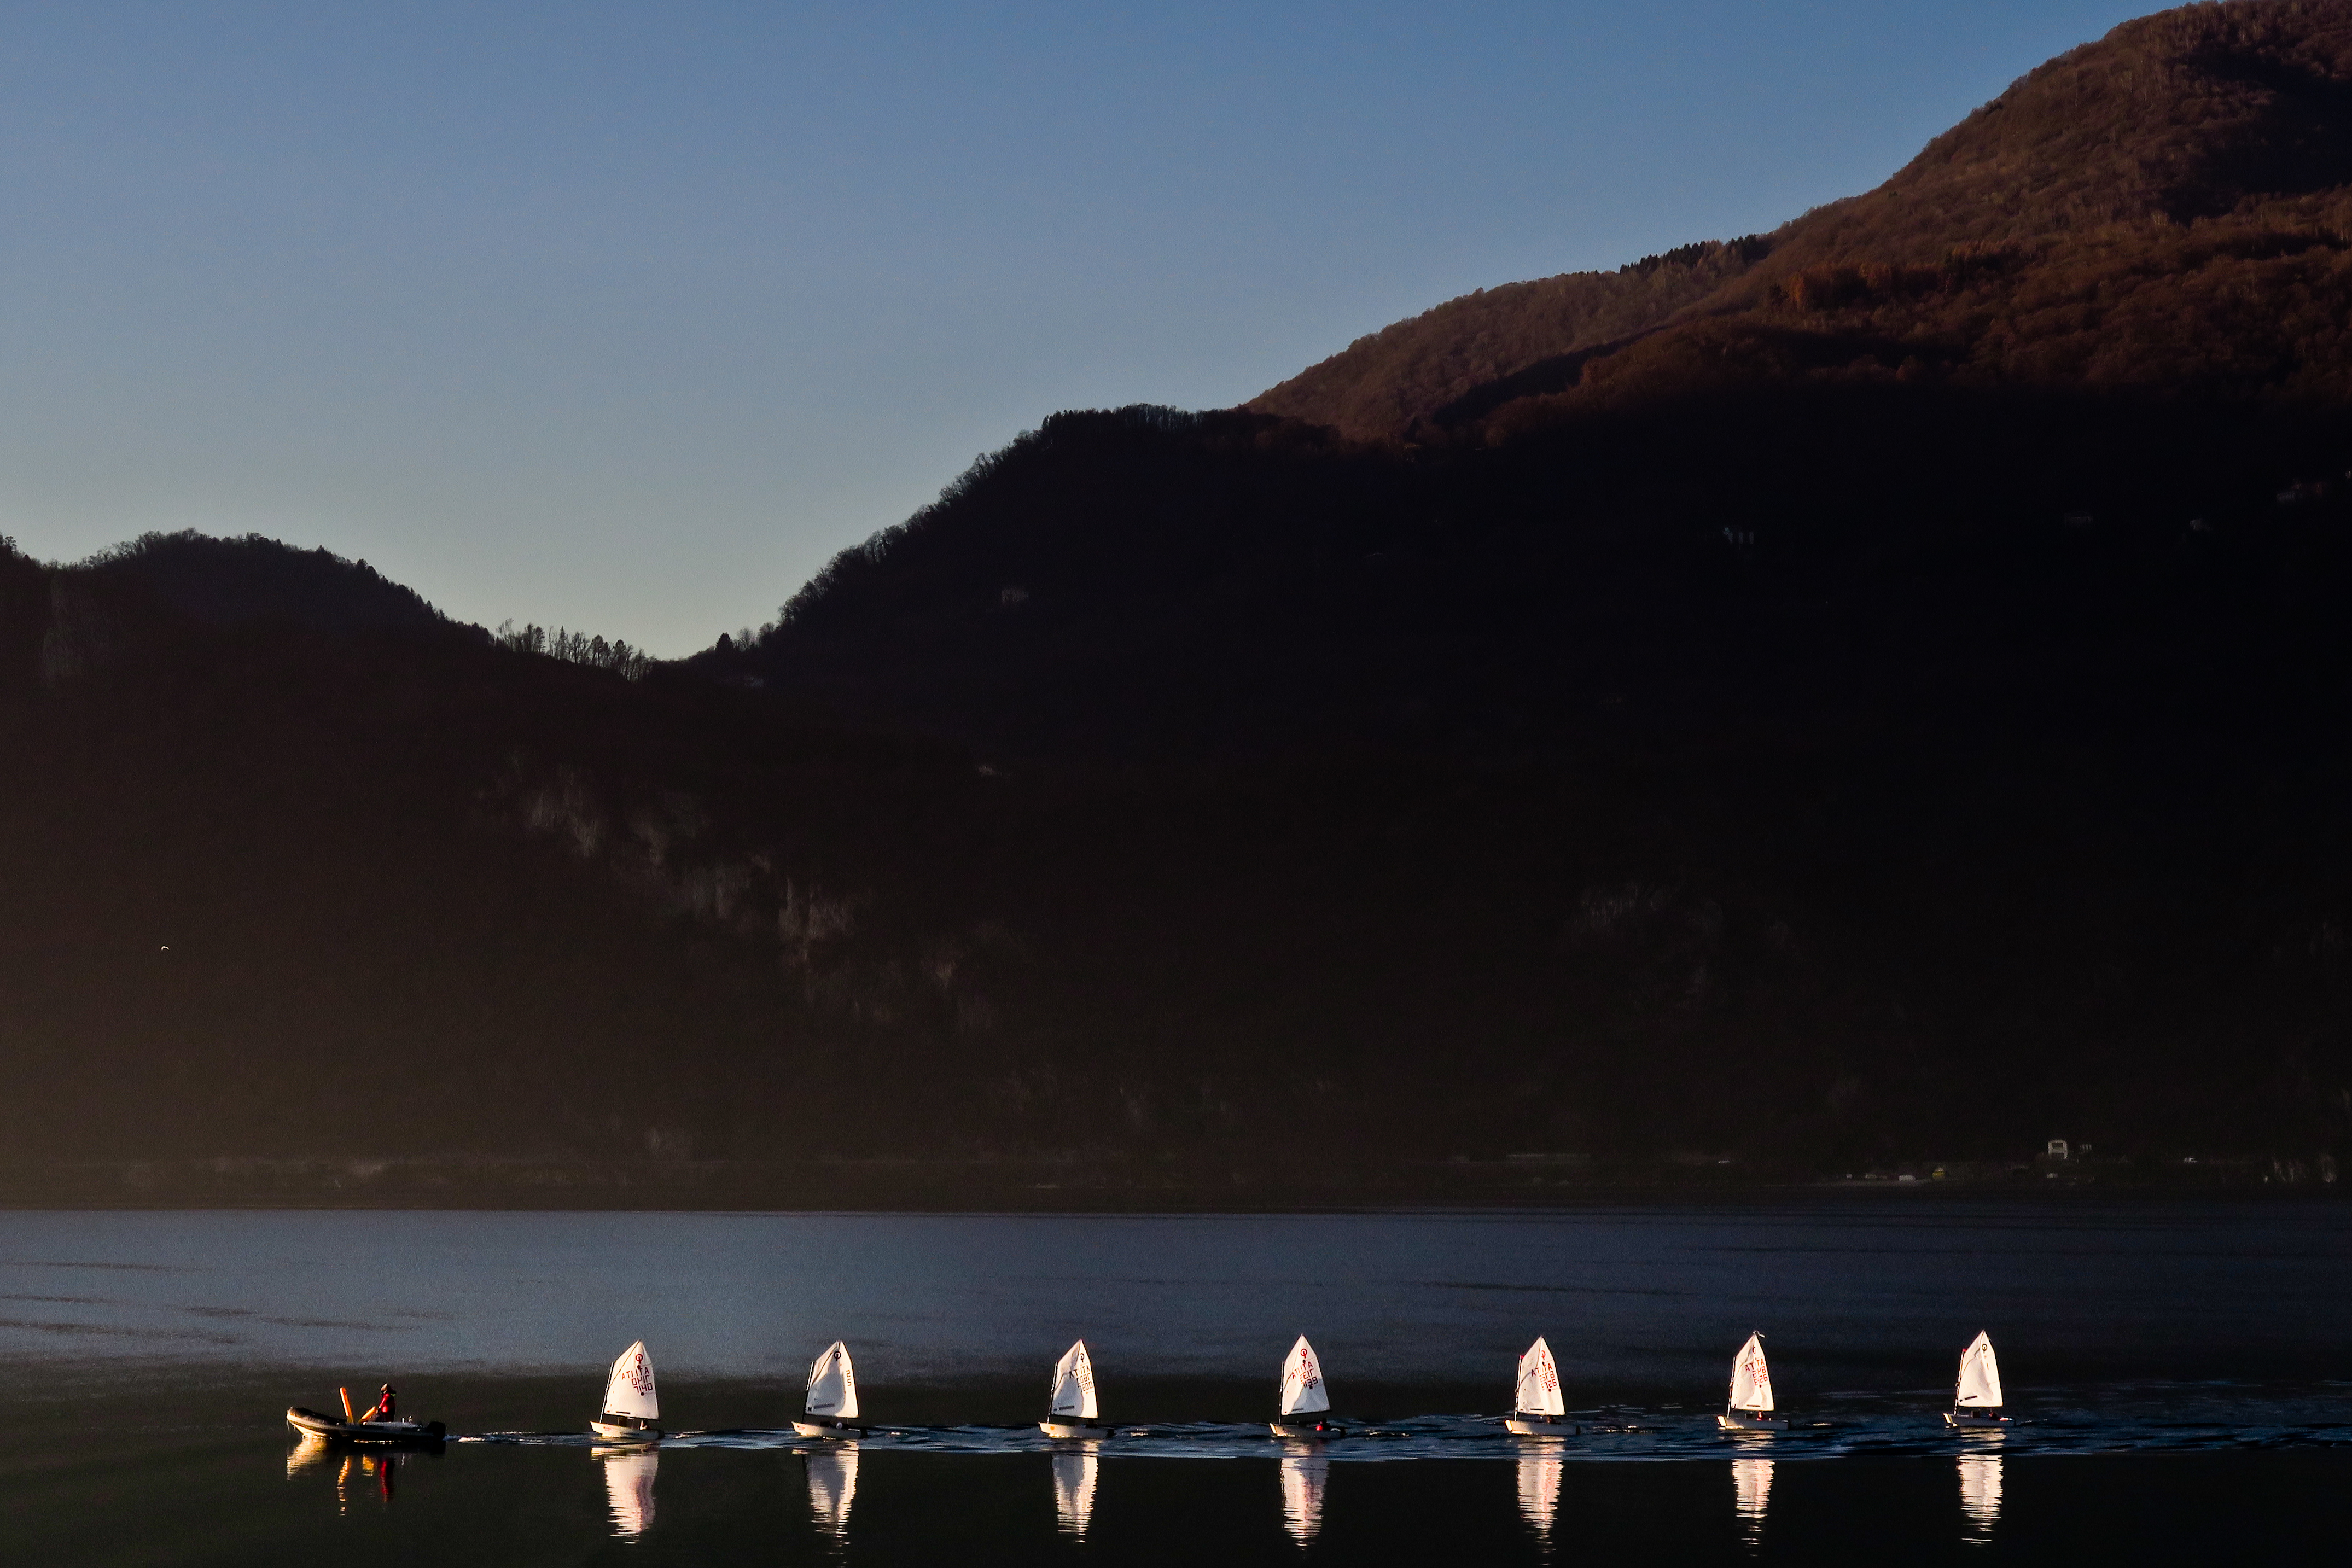 Como lake (Italy). The boats of Optimist Class go back to the harbor after the regatta.